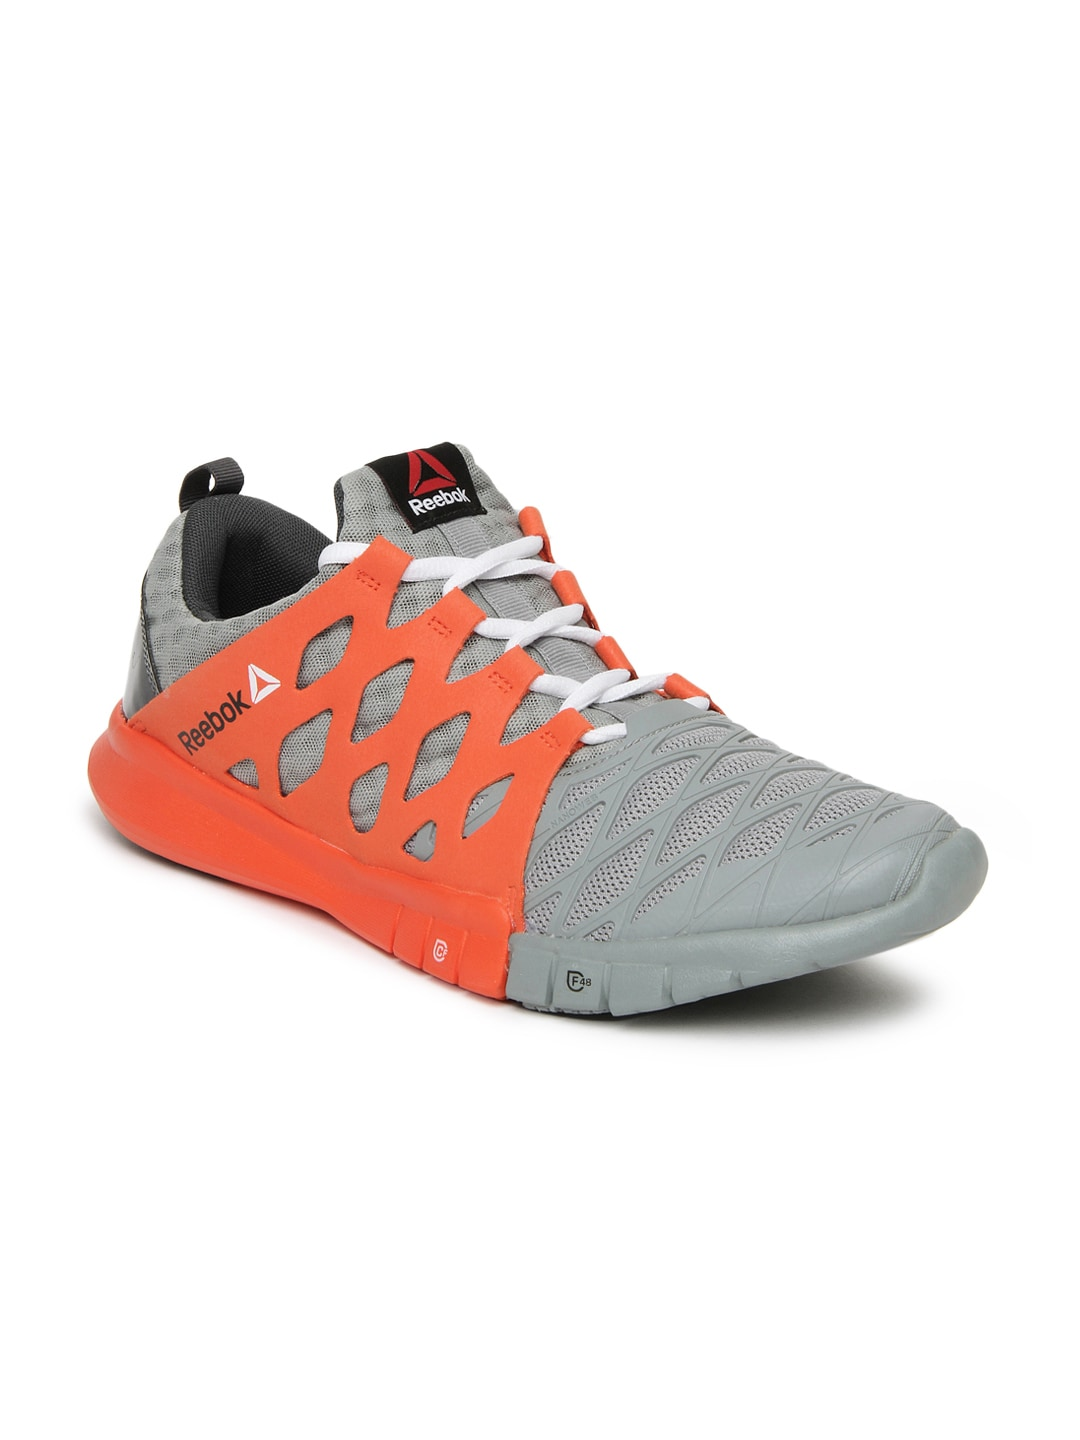 Reebok m40561 Men Grey Orange Zrx Tr Training Shoes - Best Price ... 22a4998c8